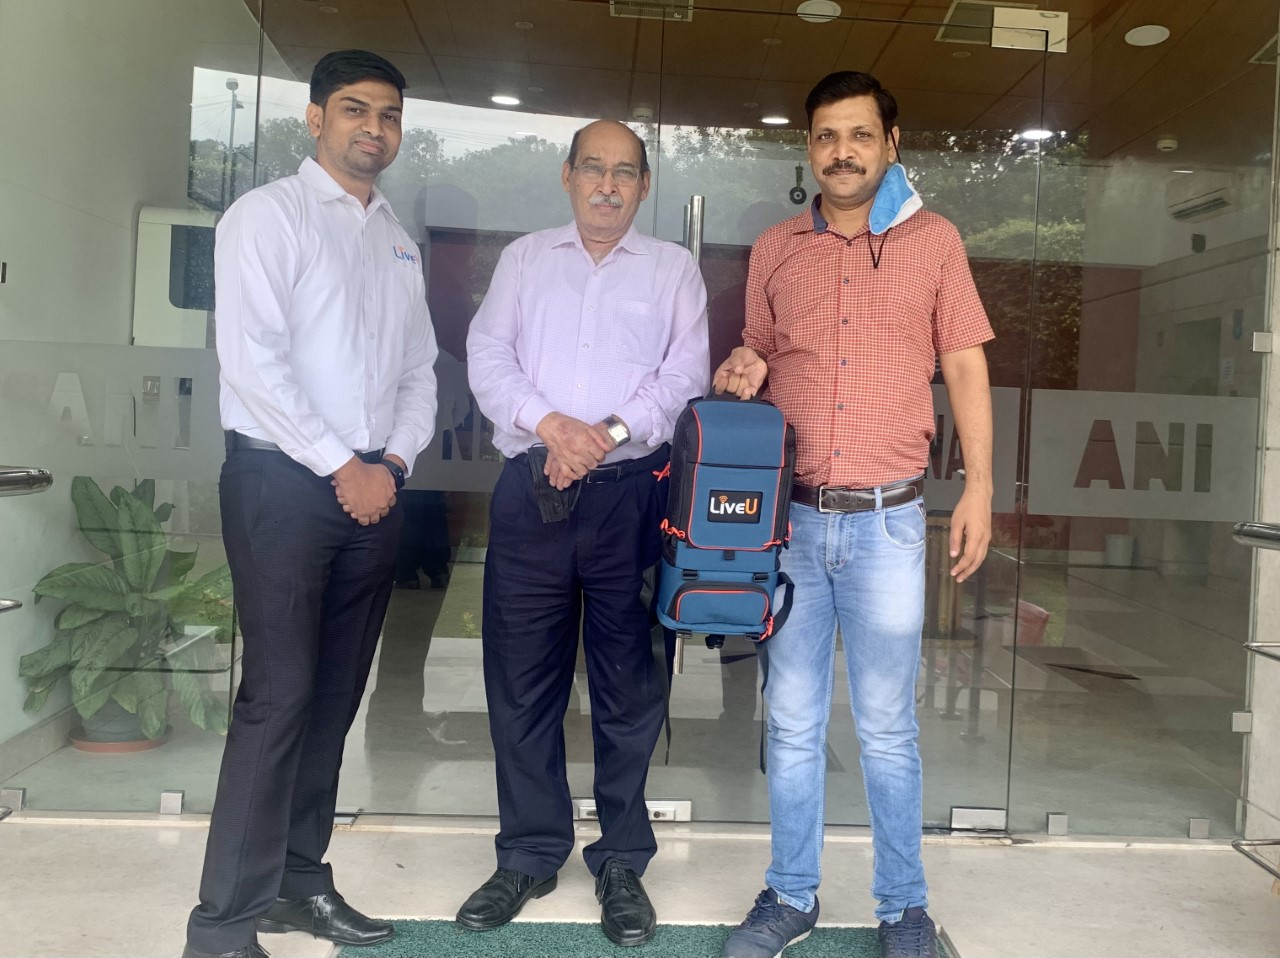 India-based ANI Expands its Live Newsgathering Capabilities with LiveU's LU800 Multi-Cam Solution